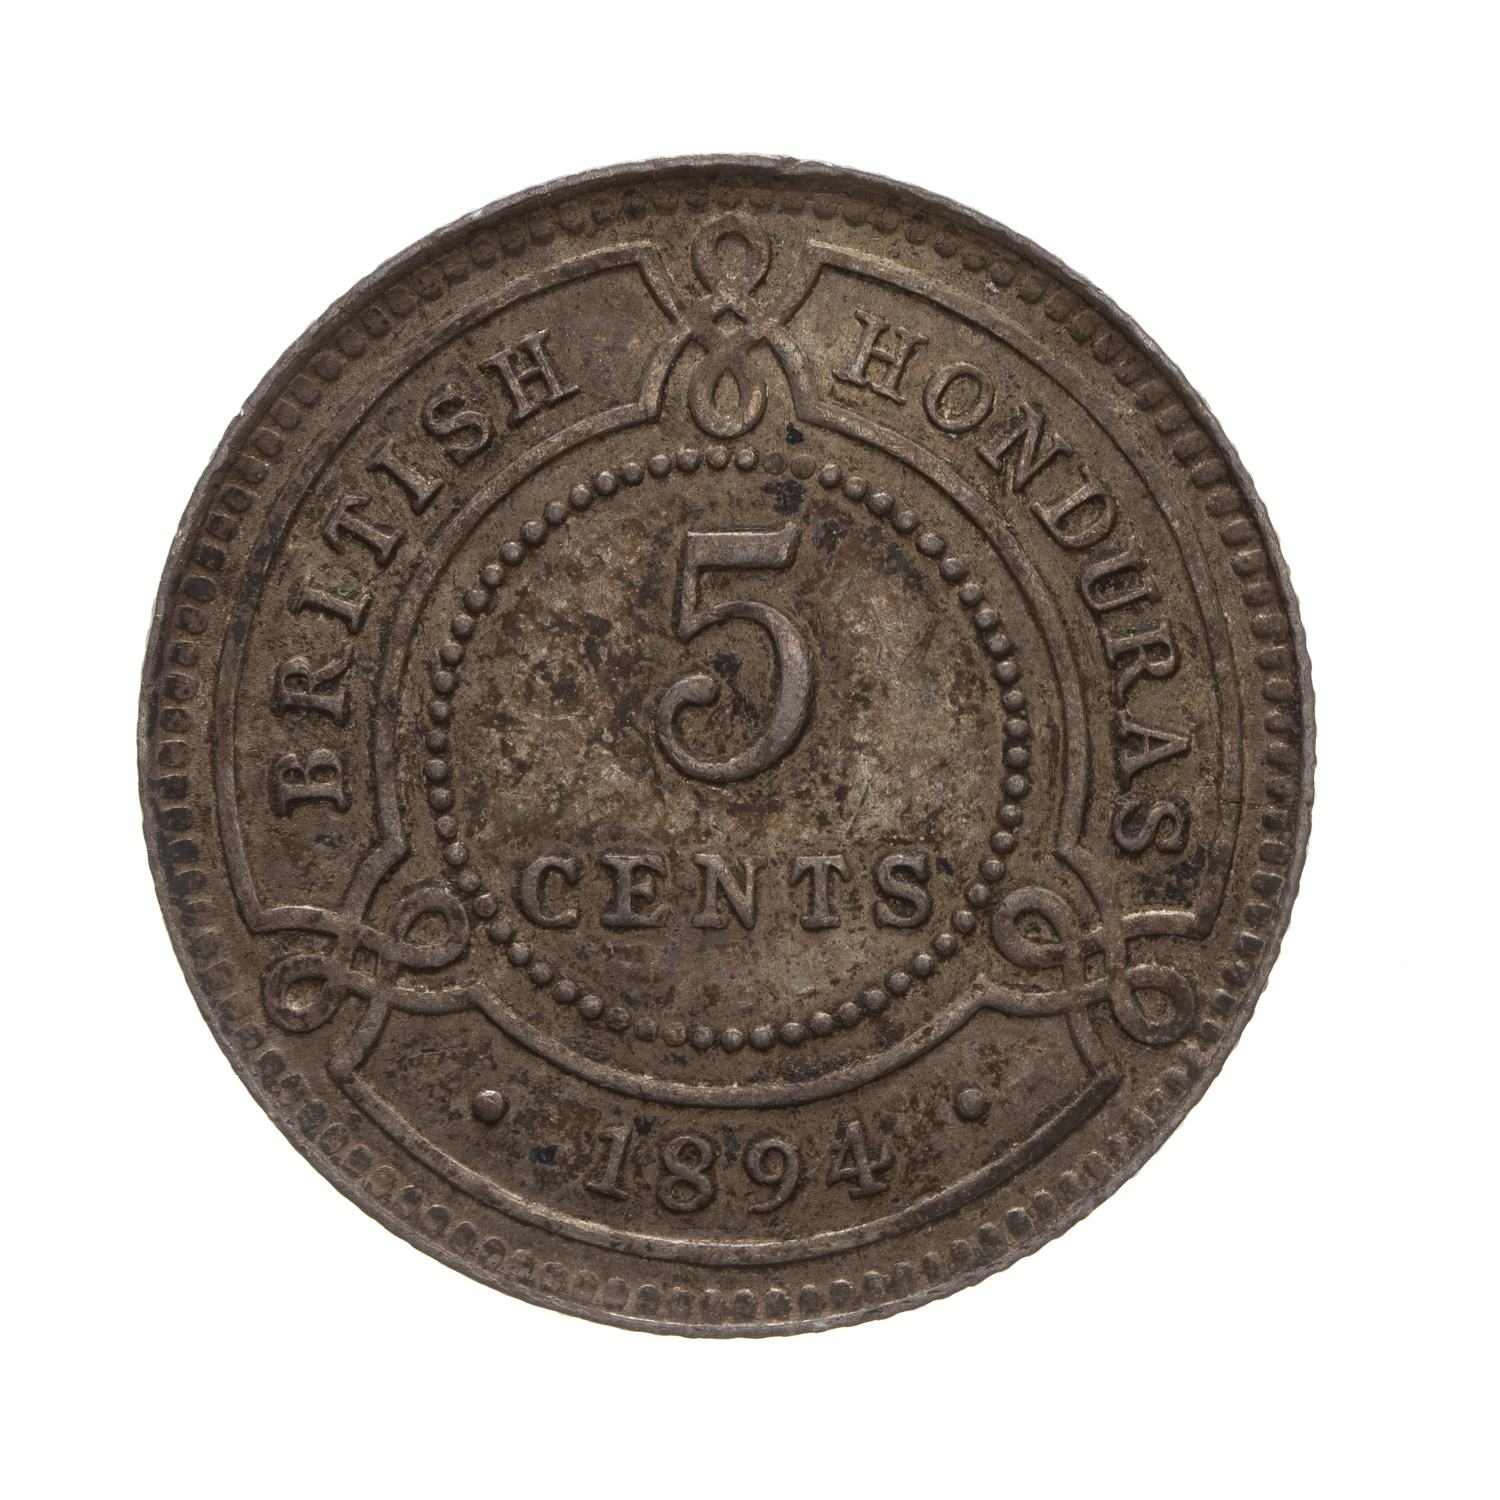 Five Cents 1894: Photo Coin - 5 Cents, British Honduras (Belize), 1894